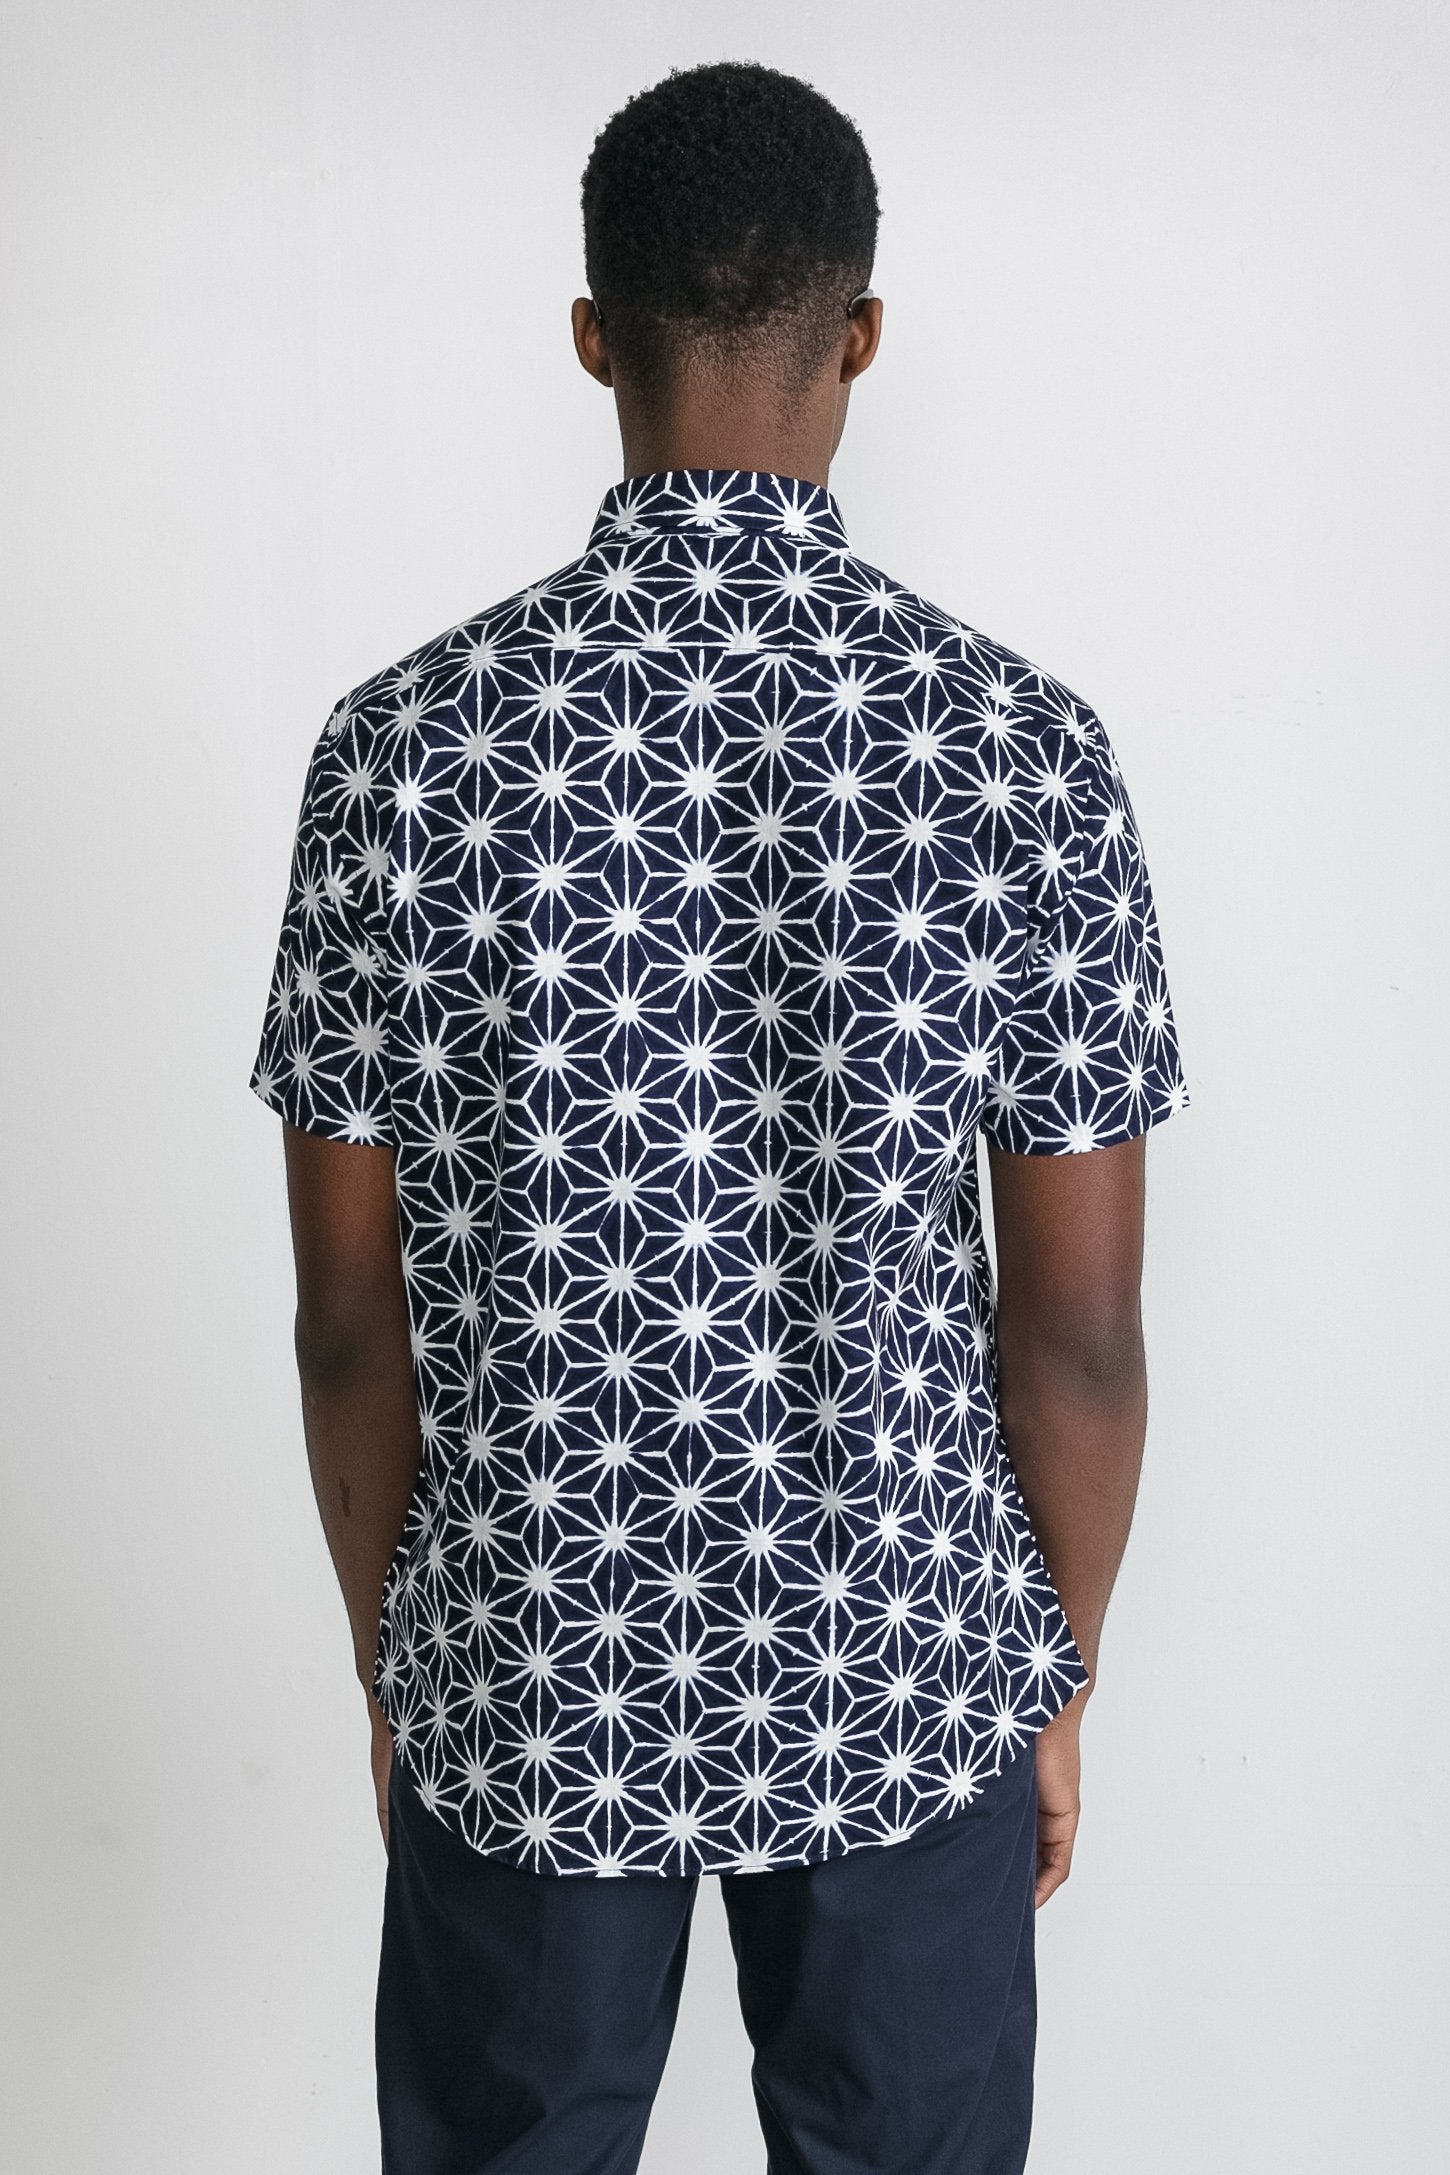 Japanese Asanoha Print in Navy and White 005